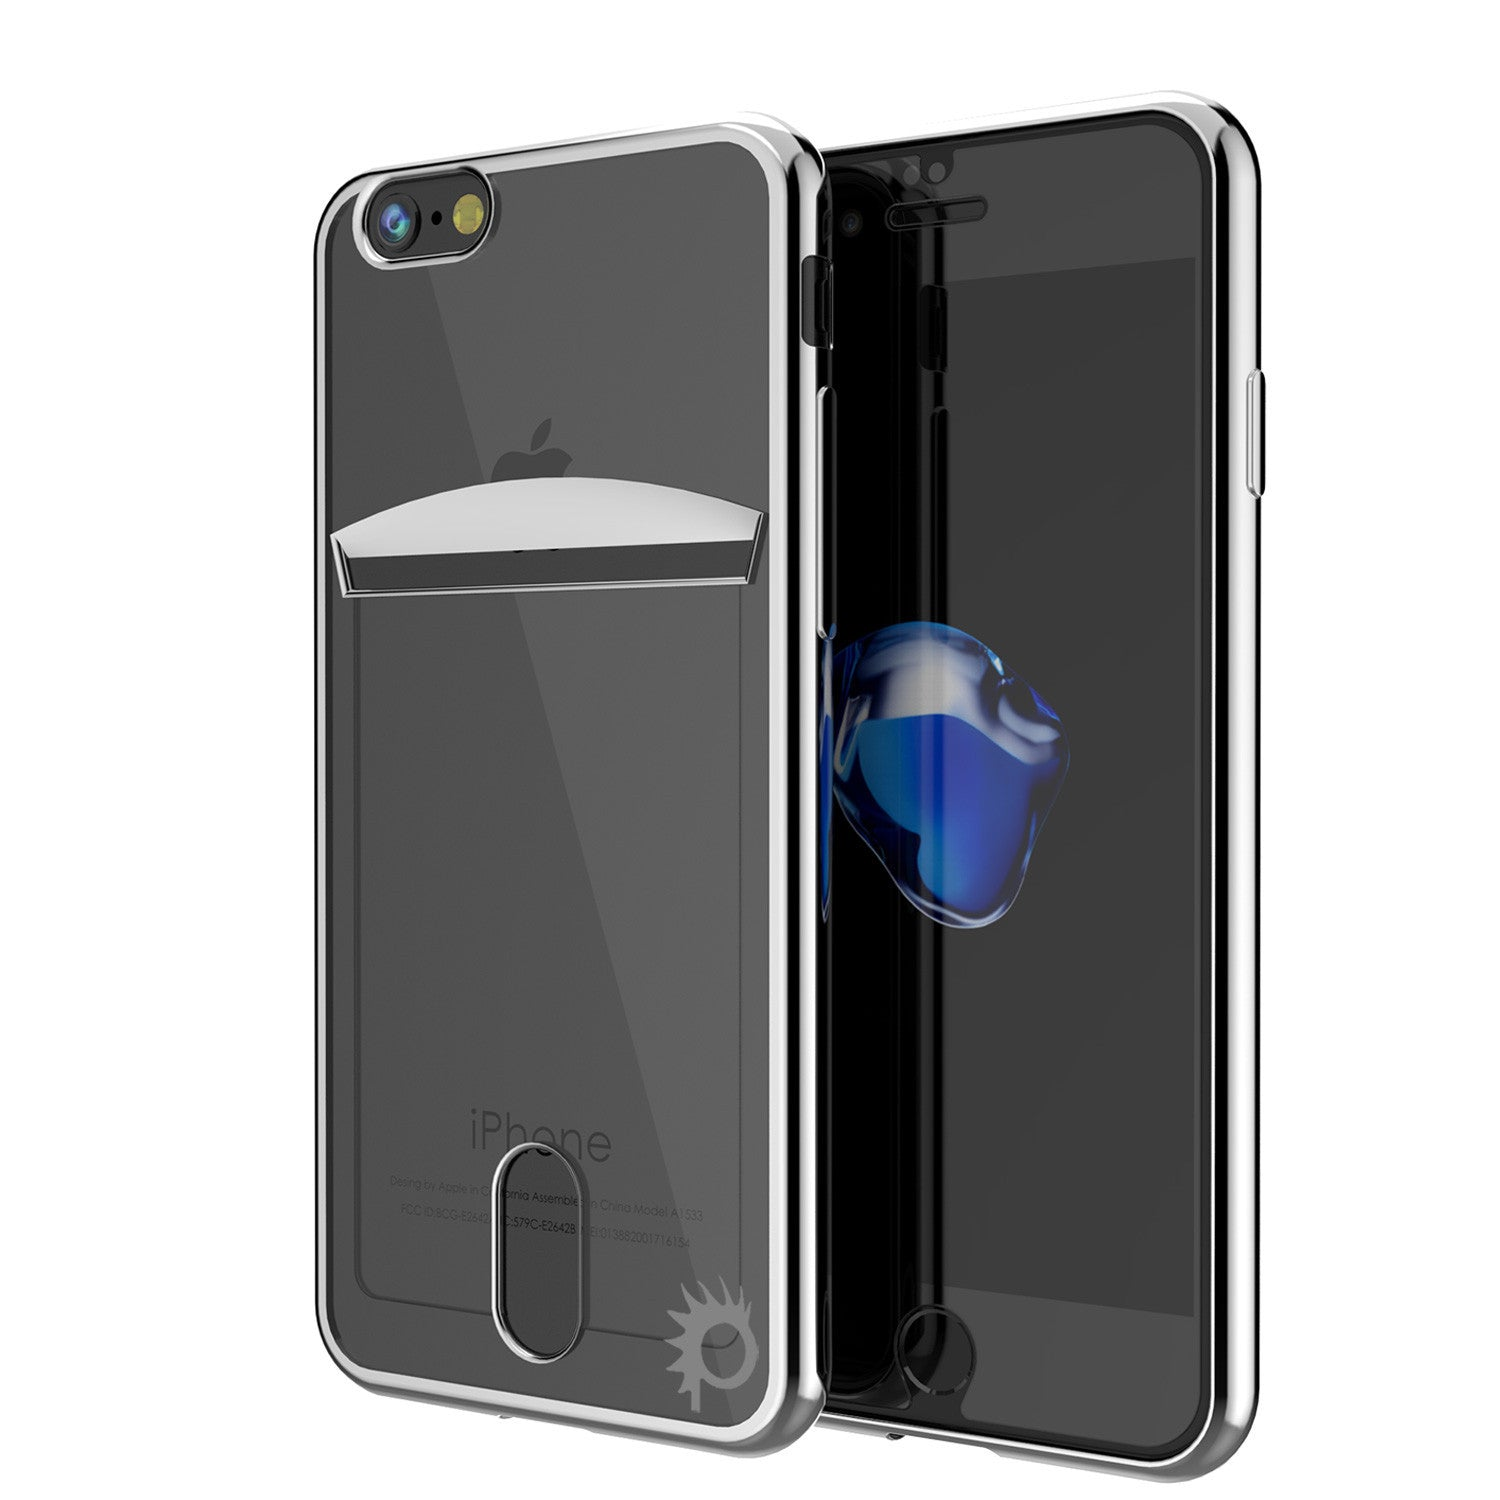 iPhone 7+ Plus Case, PUNKCASE® LUCID Silver Series | Card Slot | SHIELD Screen Protector | Ultra fit